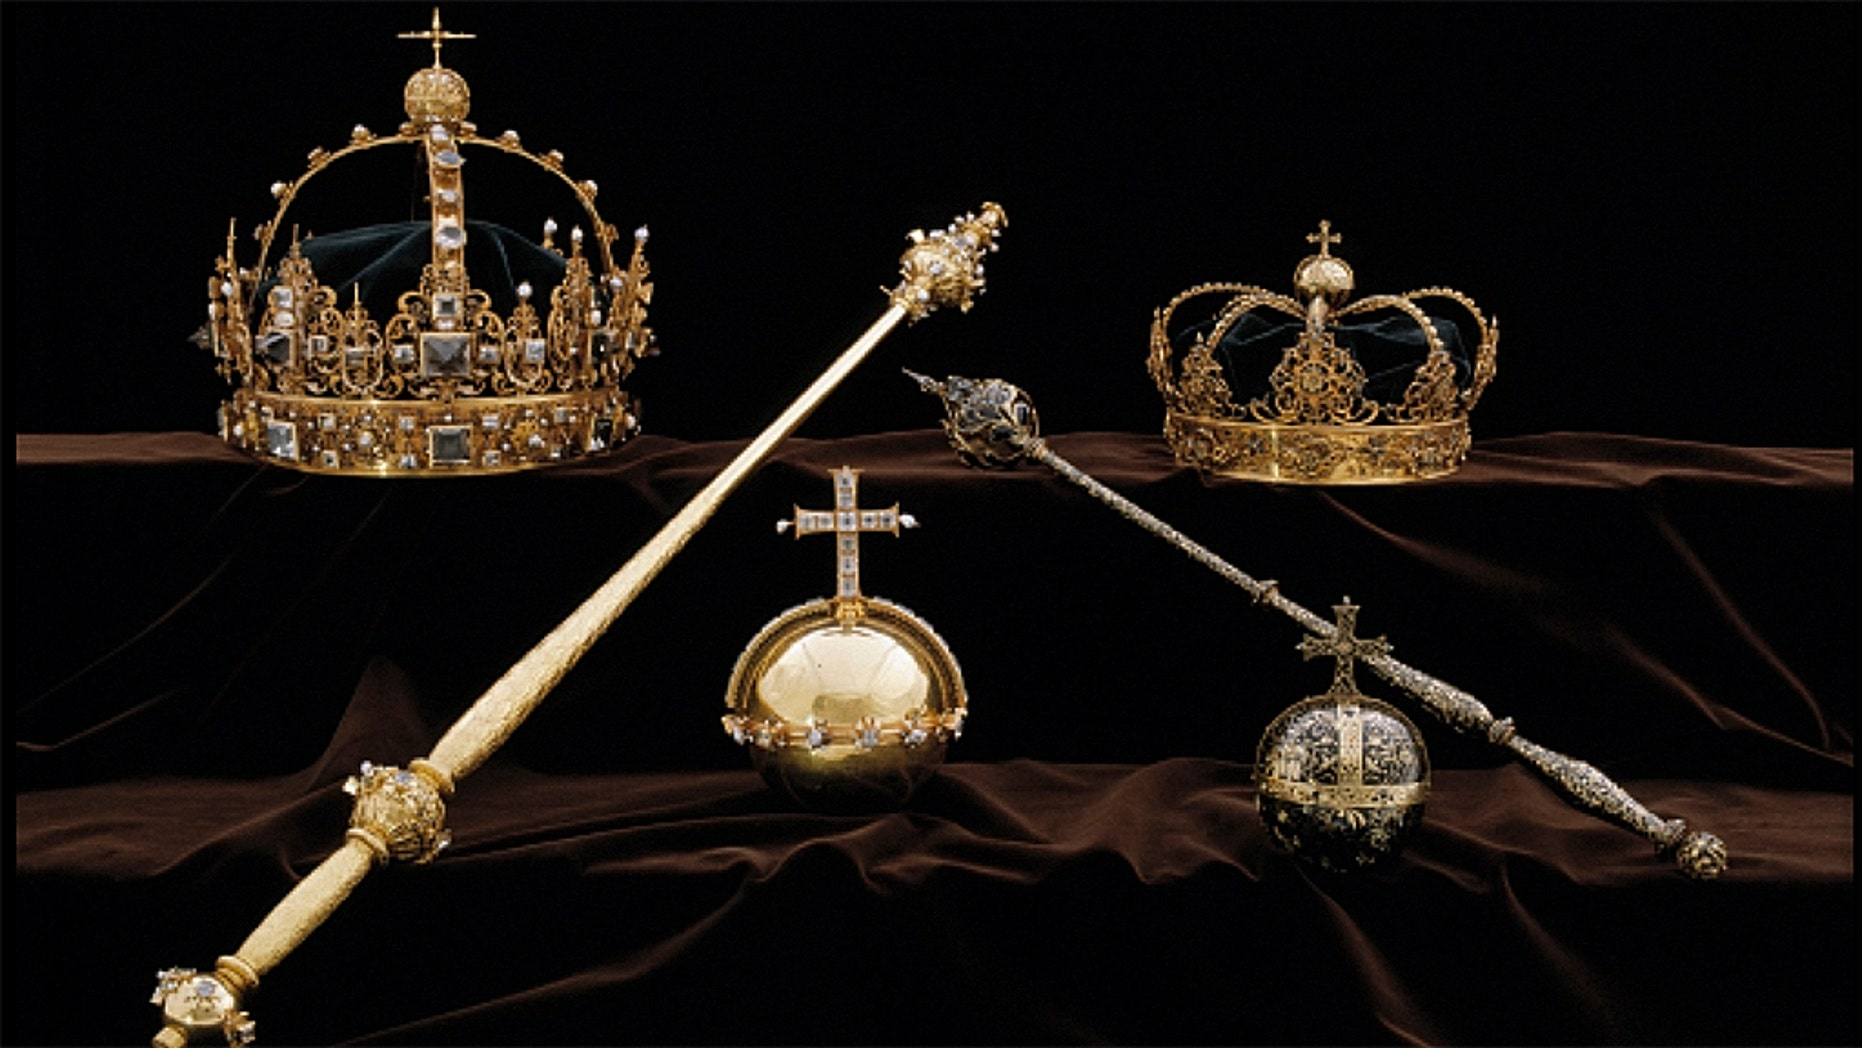 Two crowns, one belonging to King Karl IX, the other to Queen Kristina, were stolen by two thieves on Tuesday, according to police.